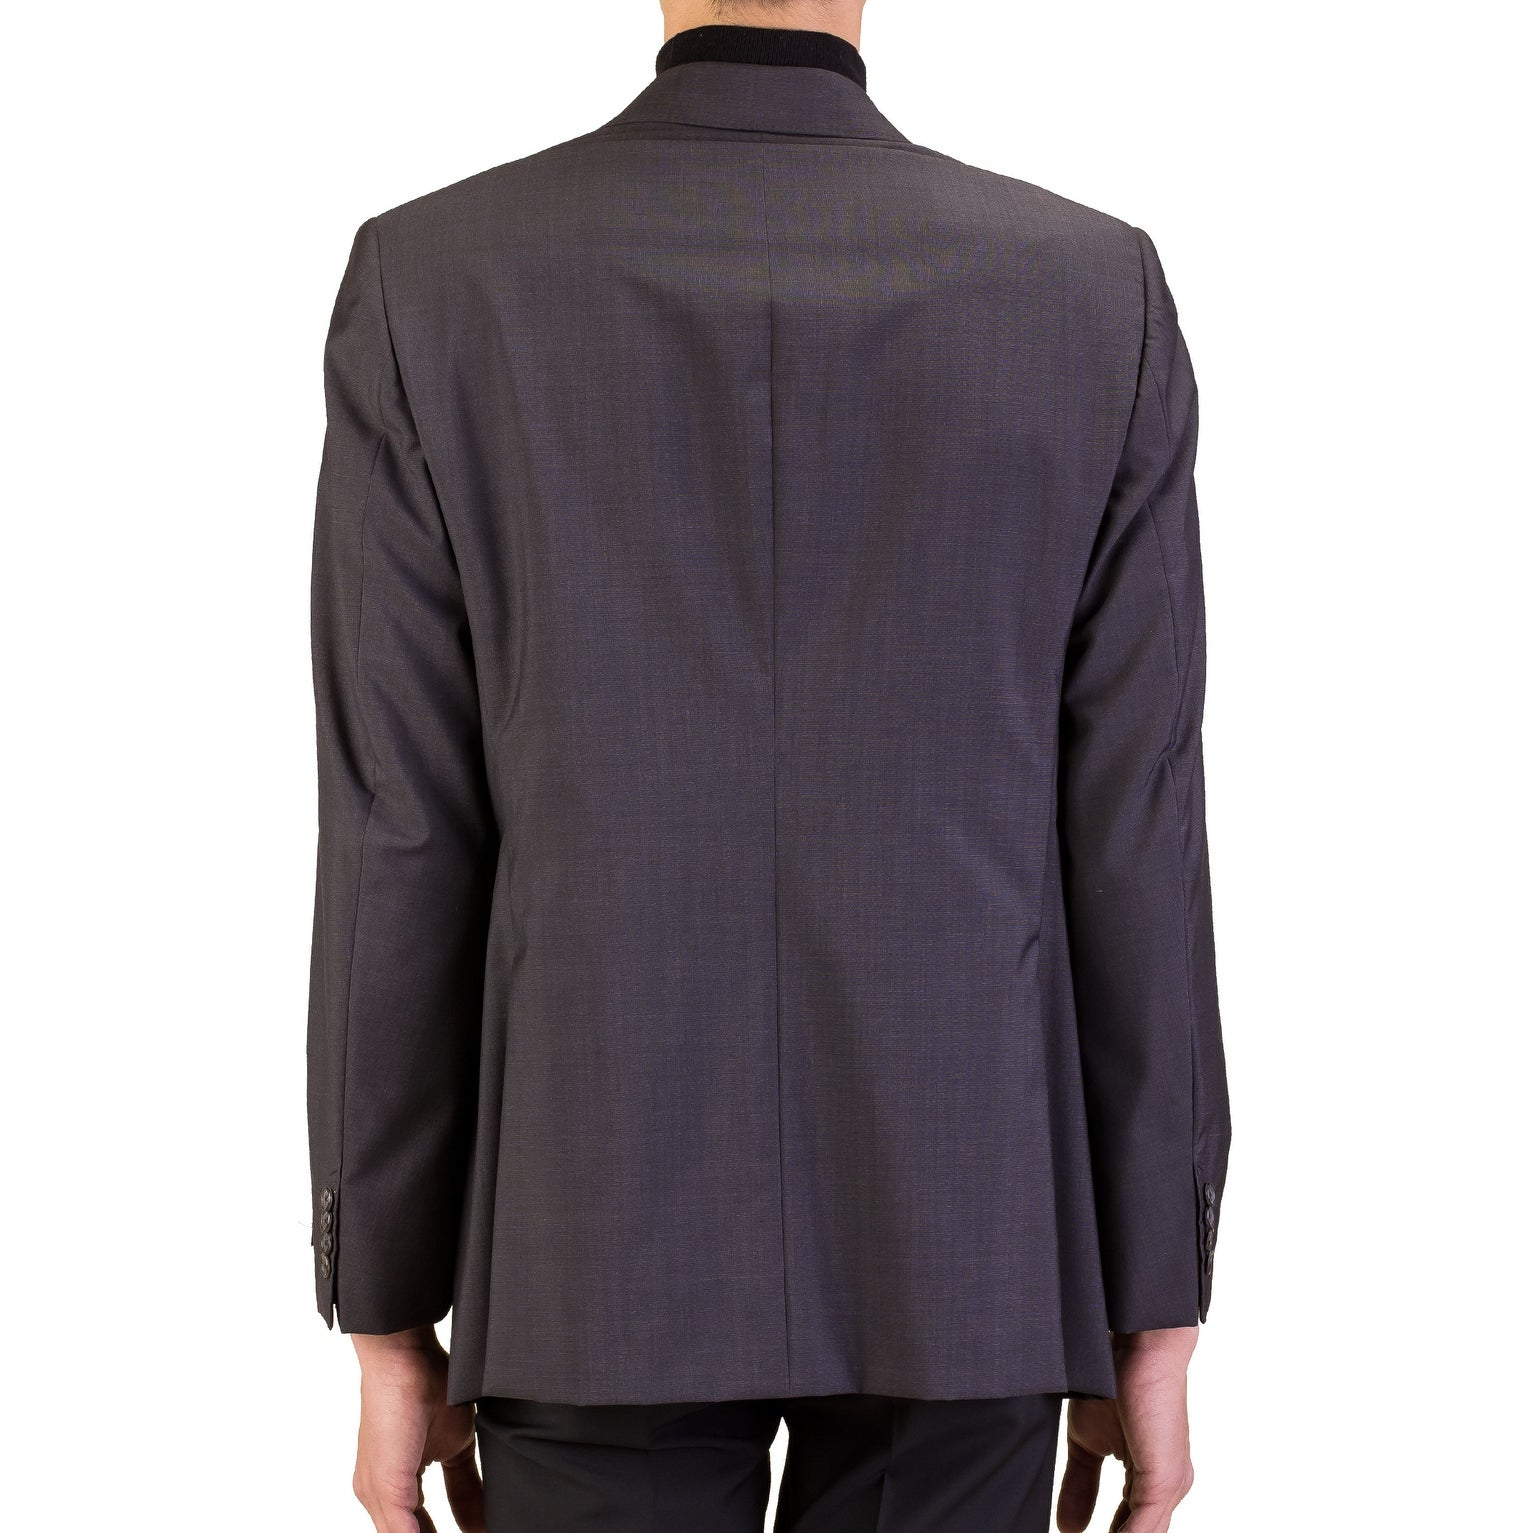 6c57be082ad Shop Prada Men s Wool Silk Double Breasted Jacket Sportscoat Black - 44 - Free  Shipping Today - Overstock - 17167737